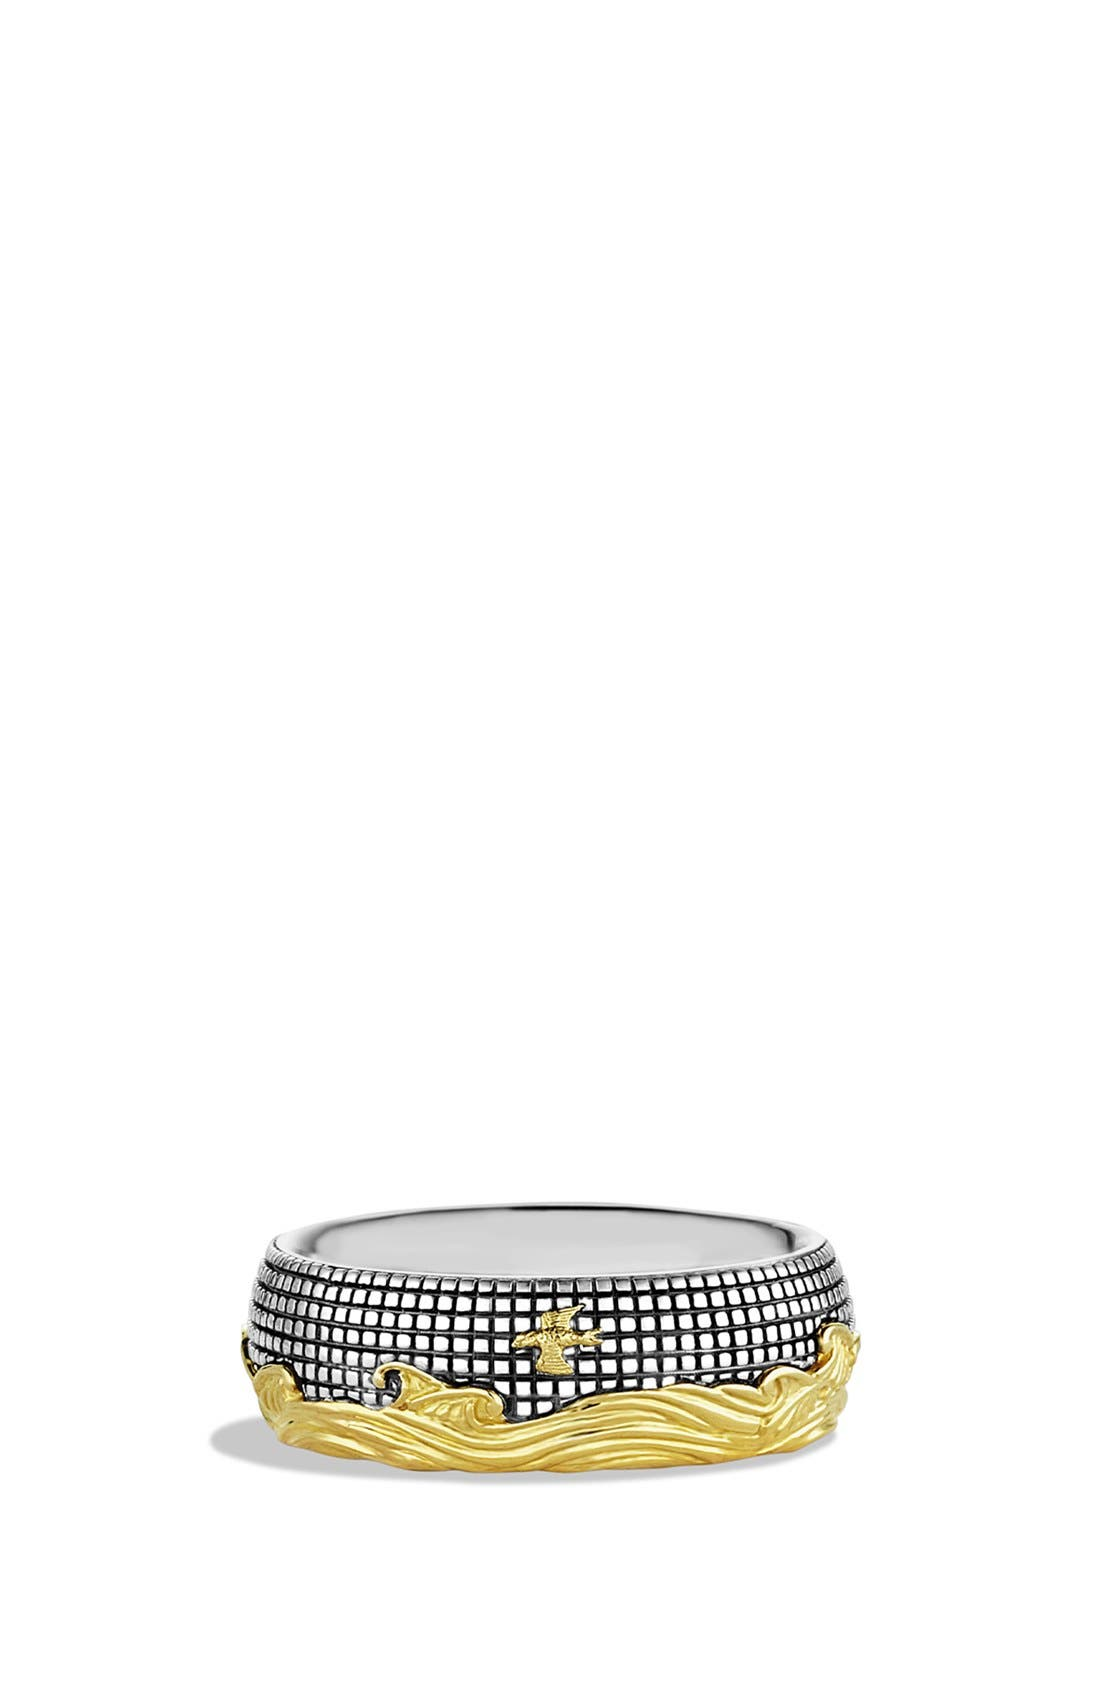 'Waves' Band Ring with Gold,                         Main,                         color, TWO TONE